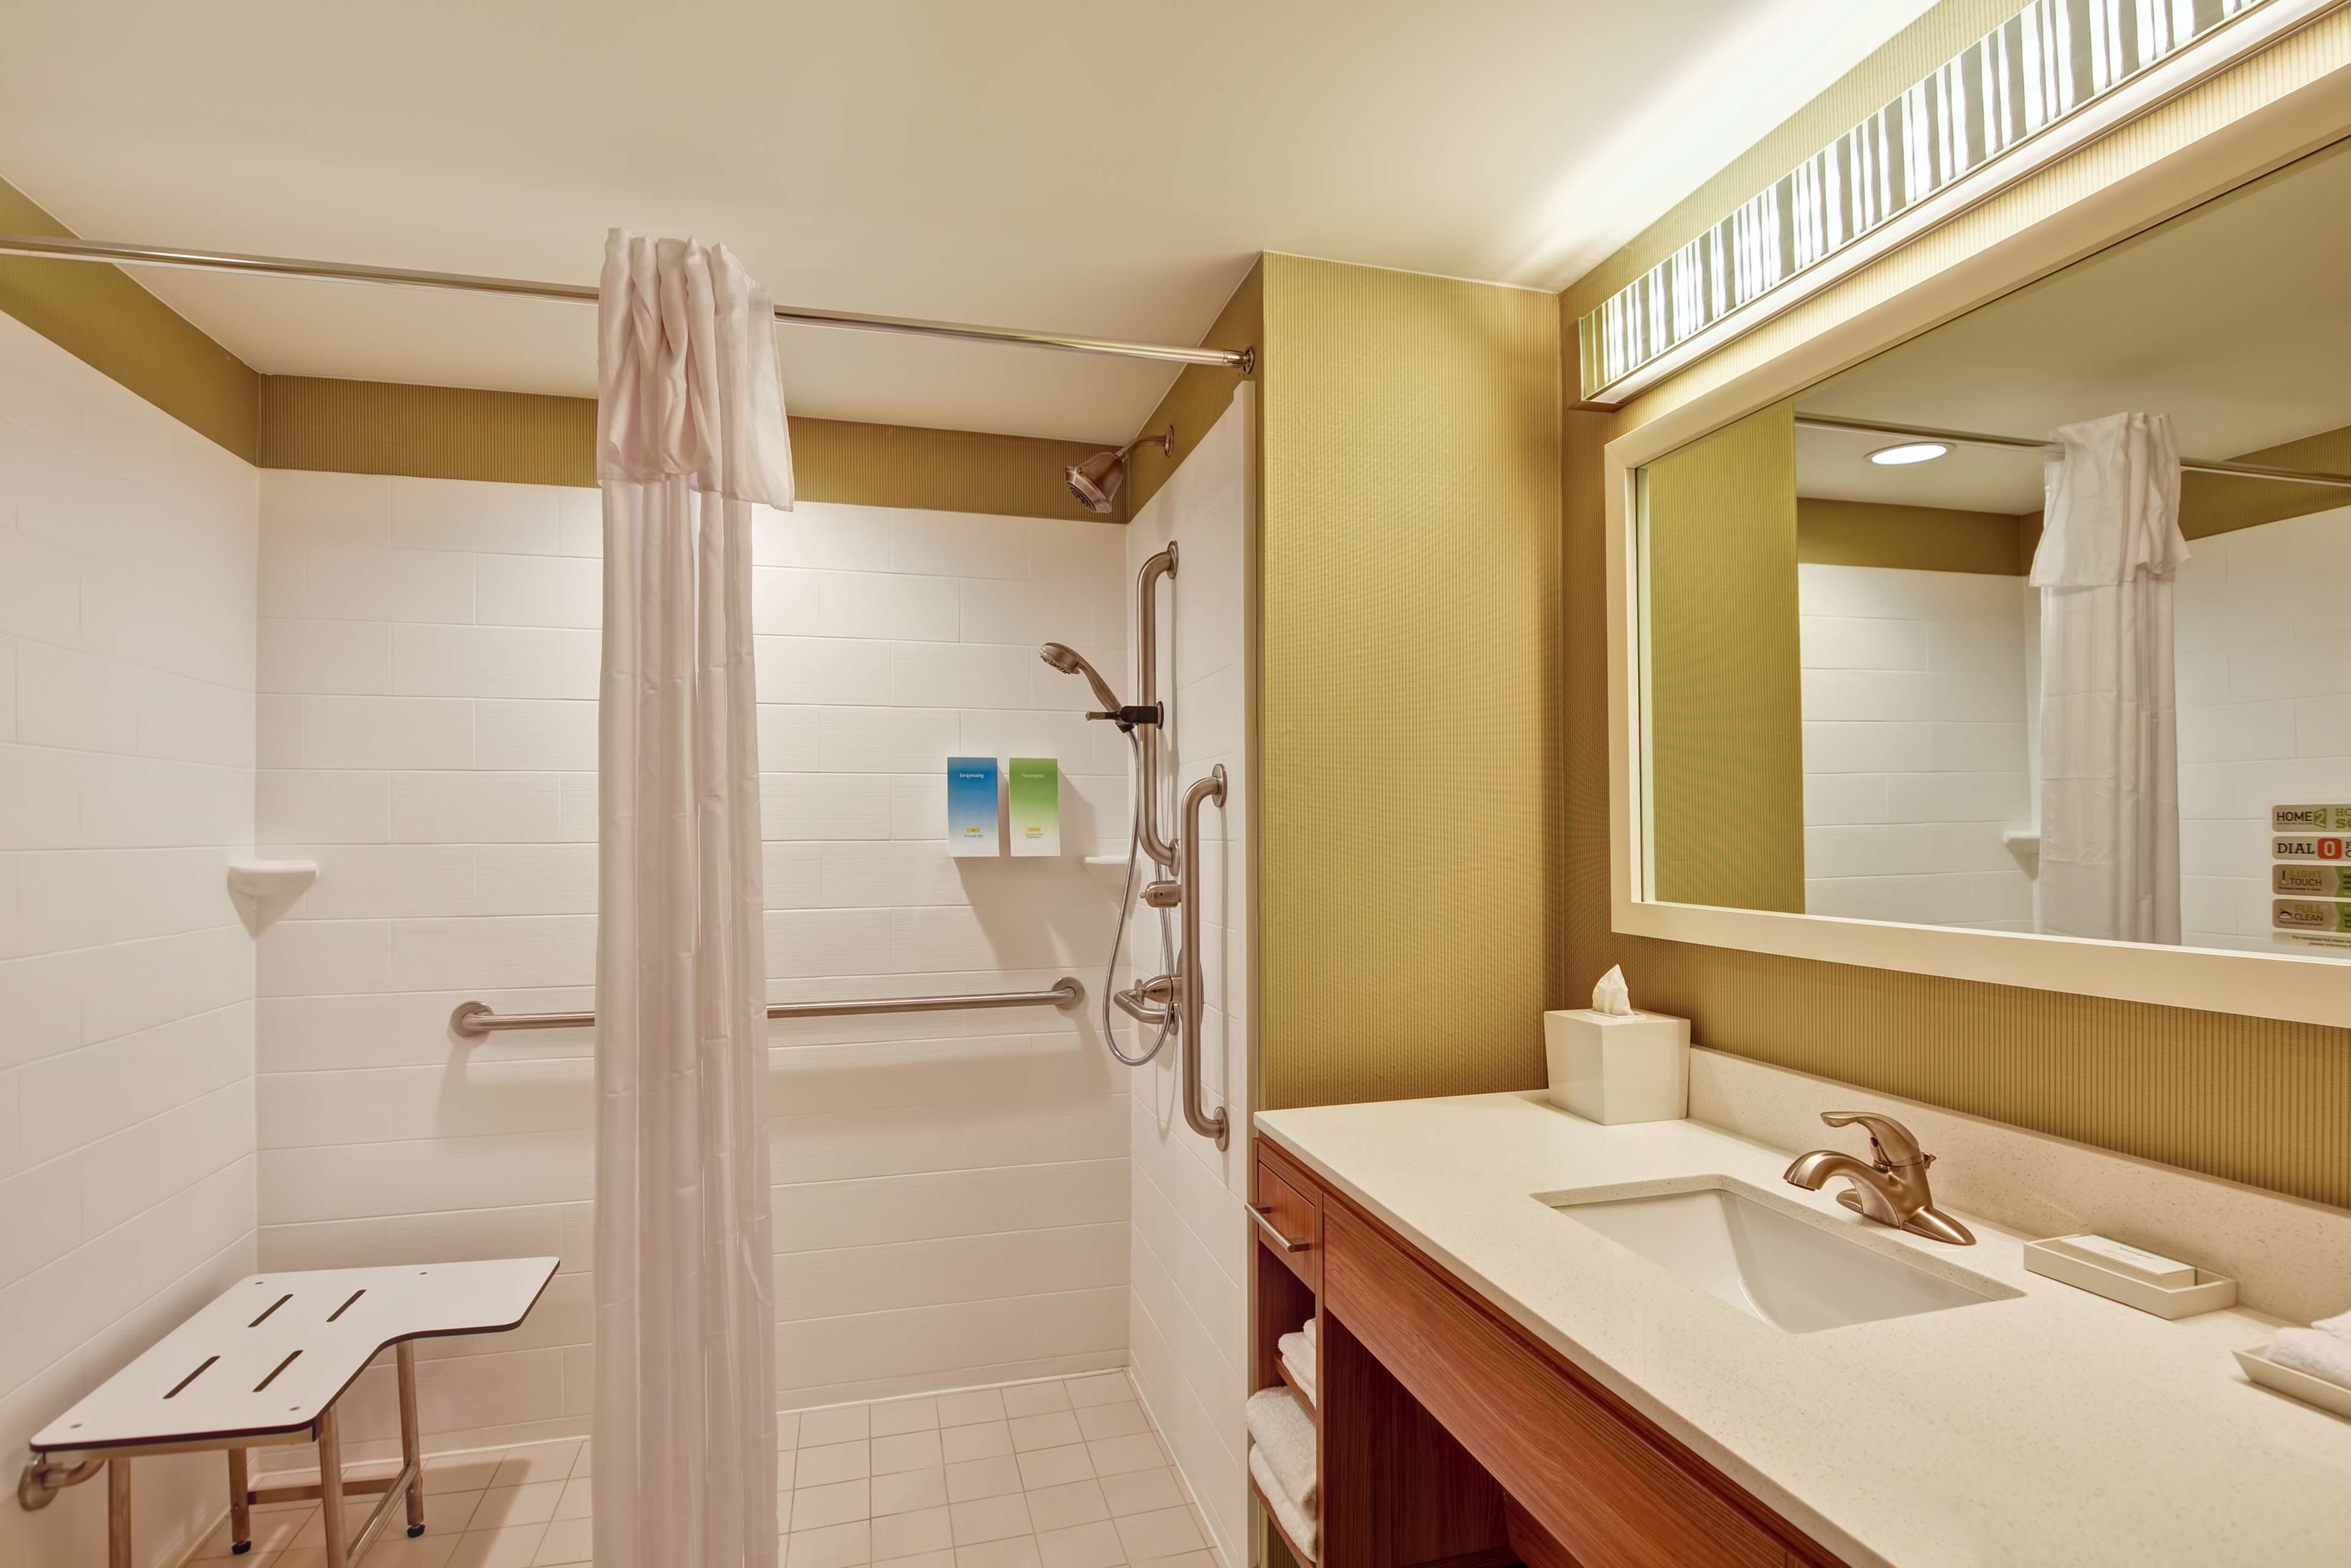 Home2 Suites by Hilton Green Bay image 21